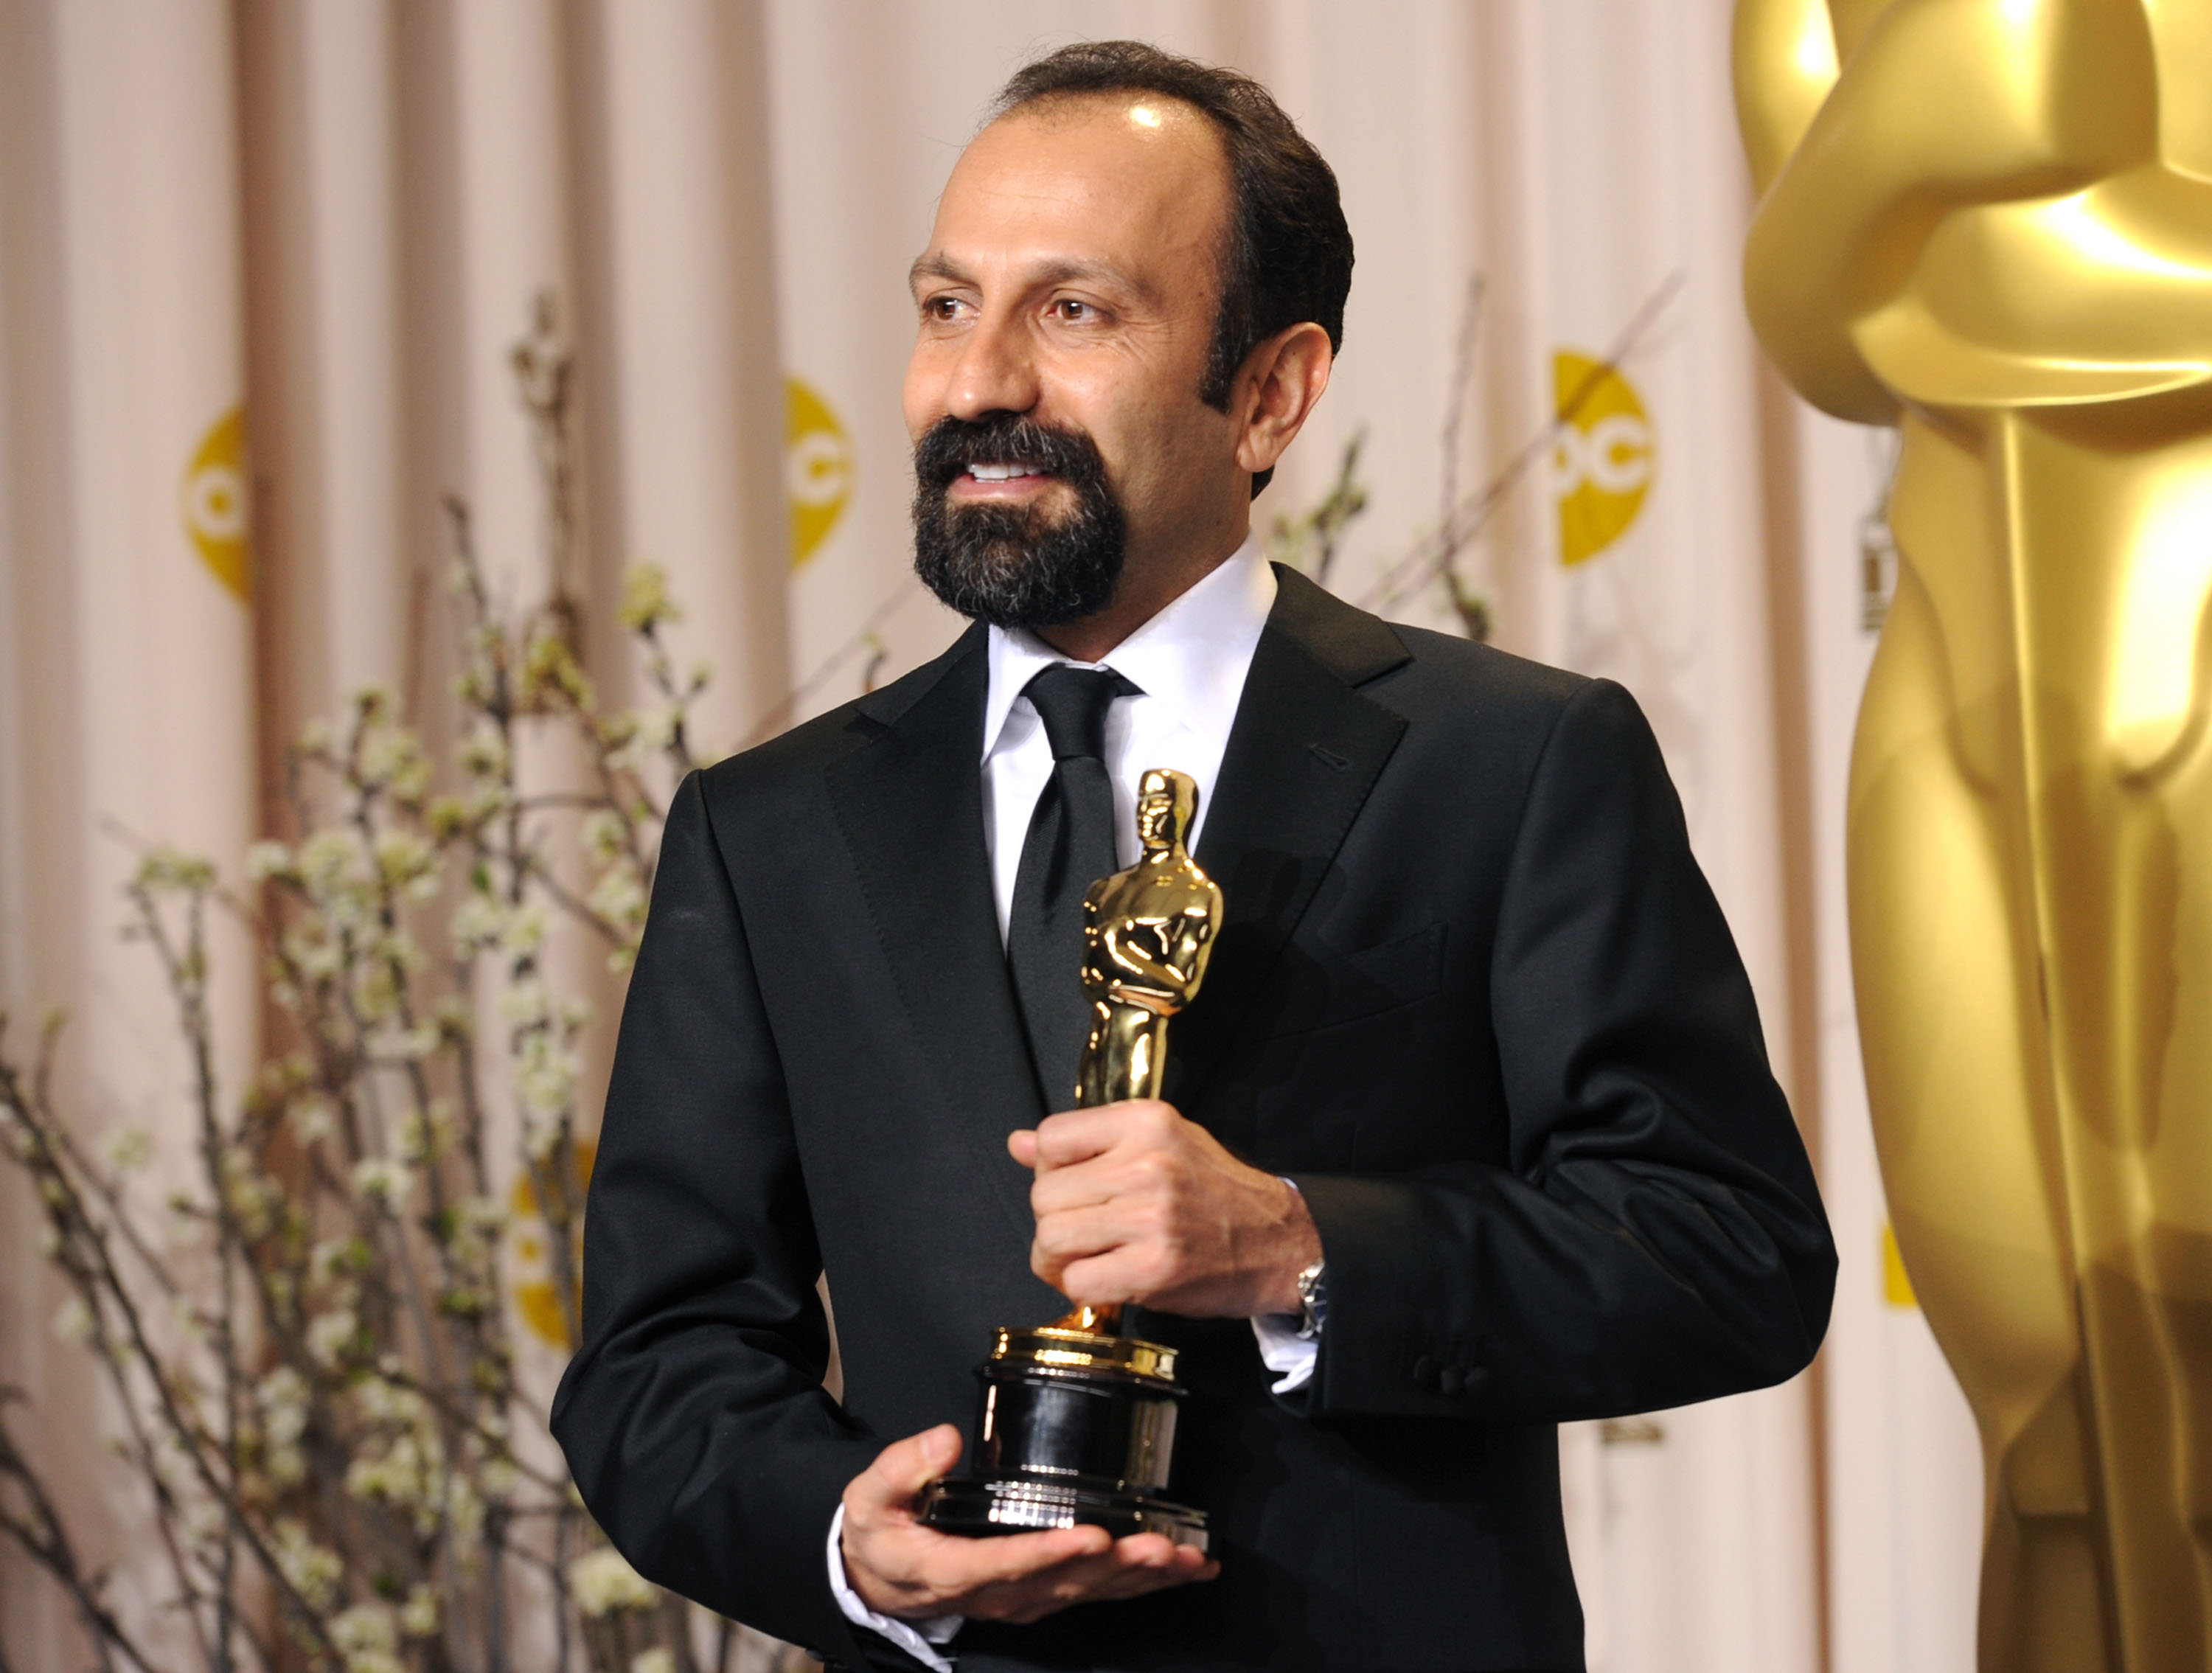 ilmmaker Asghar Farhadi, winner of the Best Foreign Film Award for 'A Separation,' poses in the press room at the 84th Annual Academy Awards held at the Hollywood & Highland Center on February 26, 2012 in Hollywood, California.